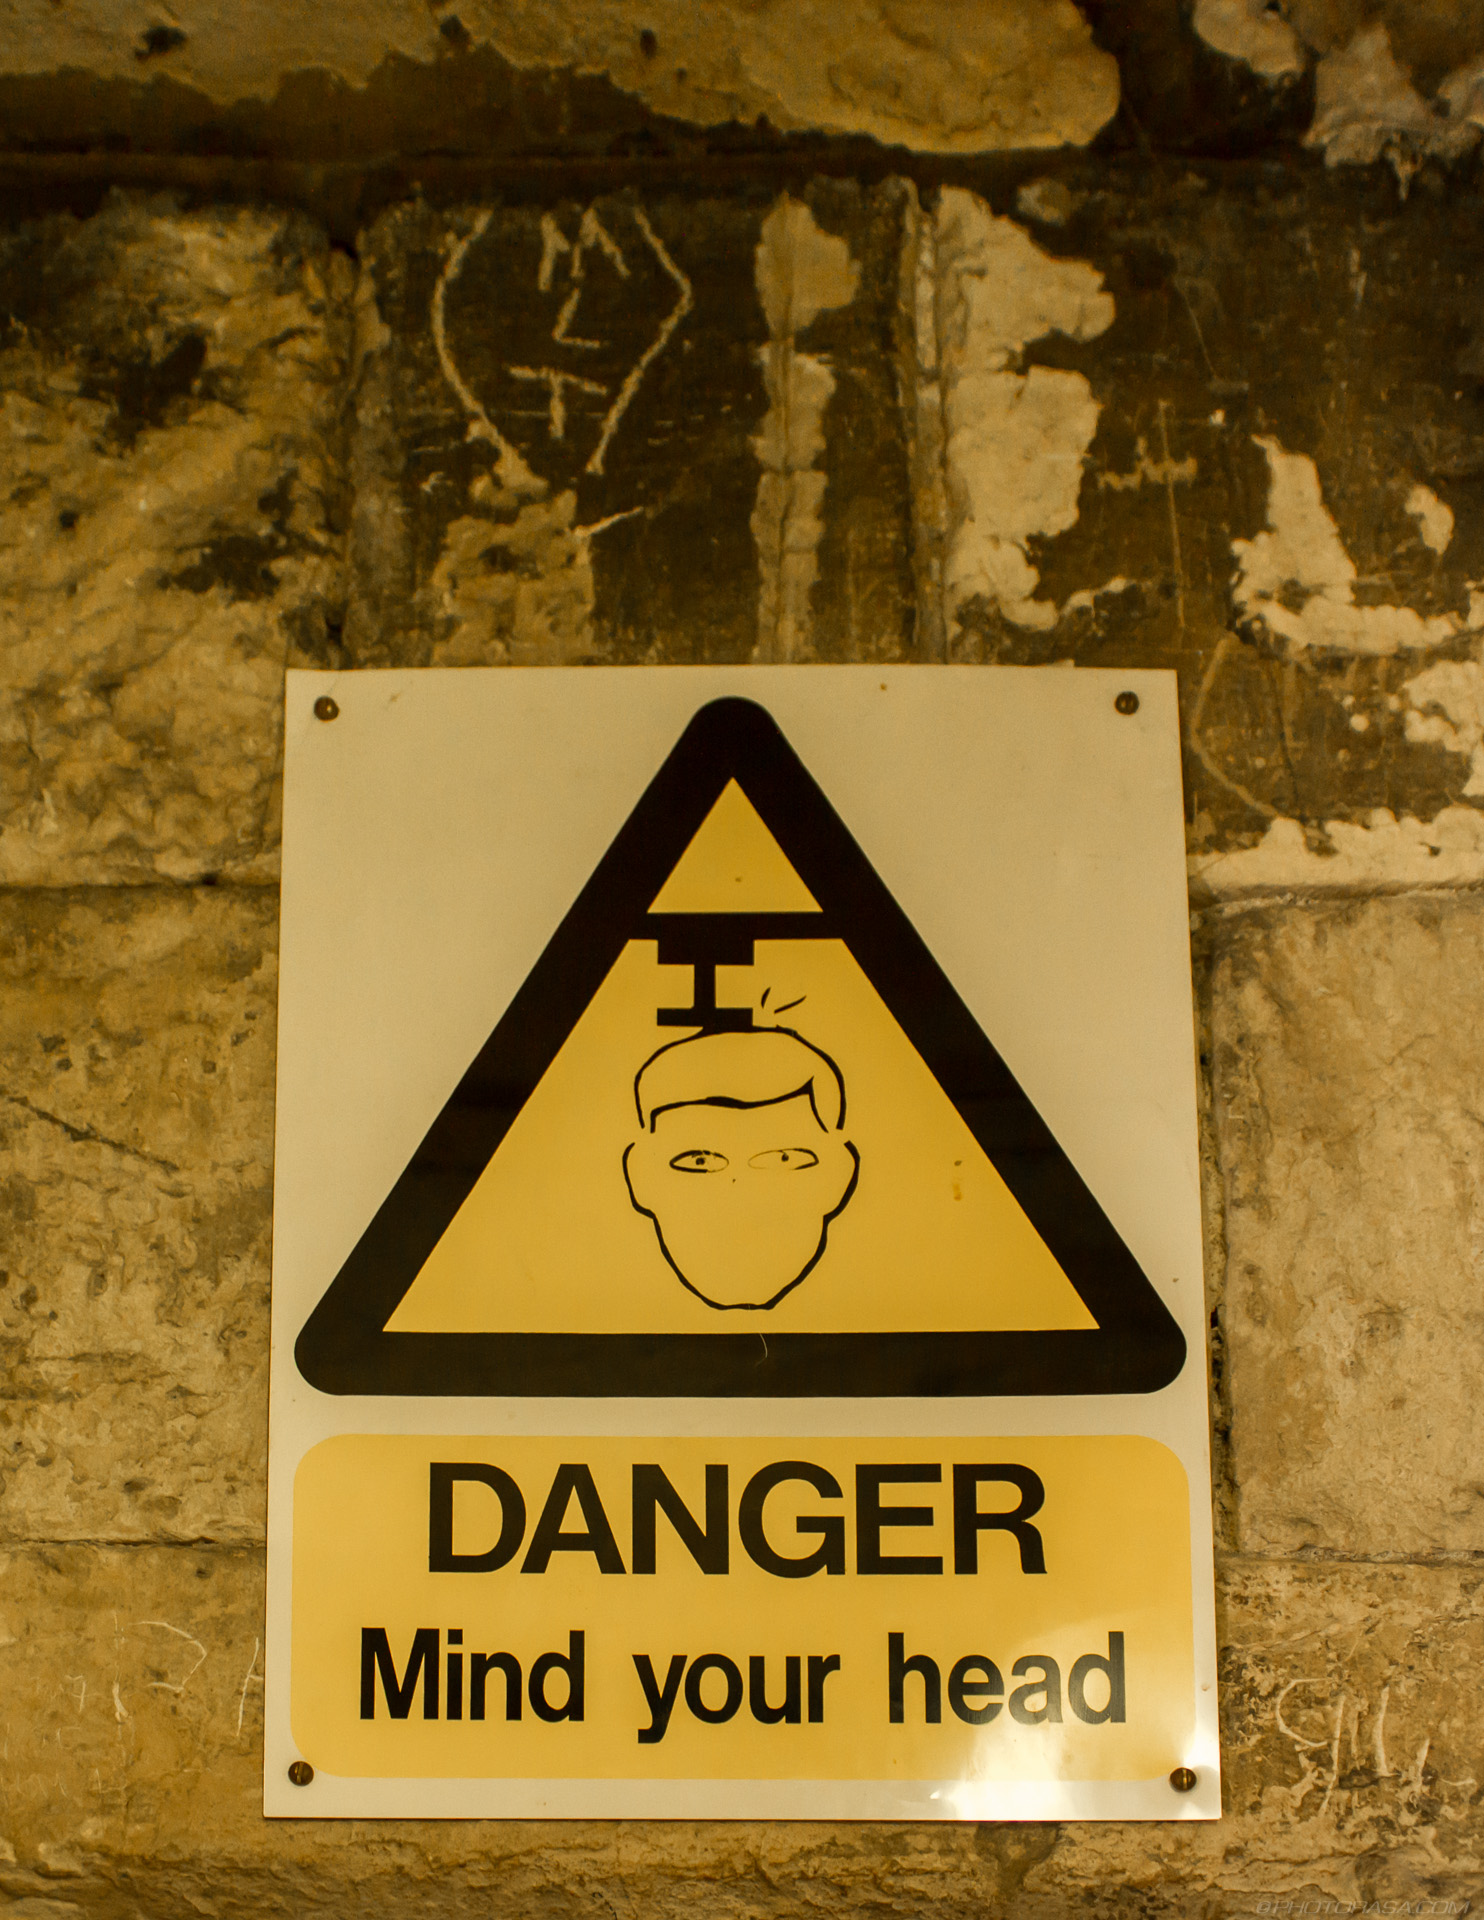 http://photorasa.com/yorkminster-cathedral/danger-mind-your-head-warning-sign/